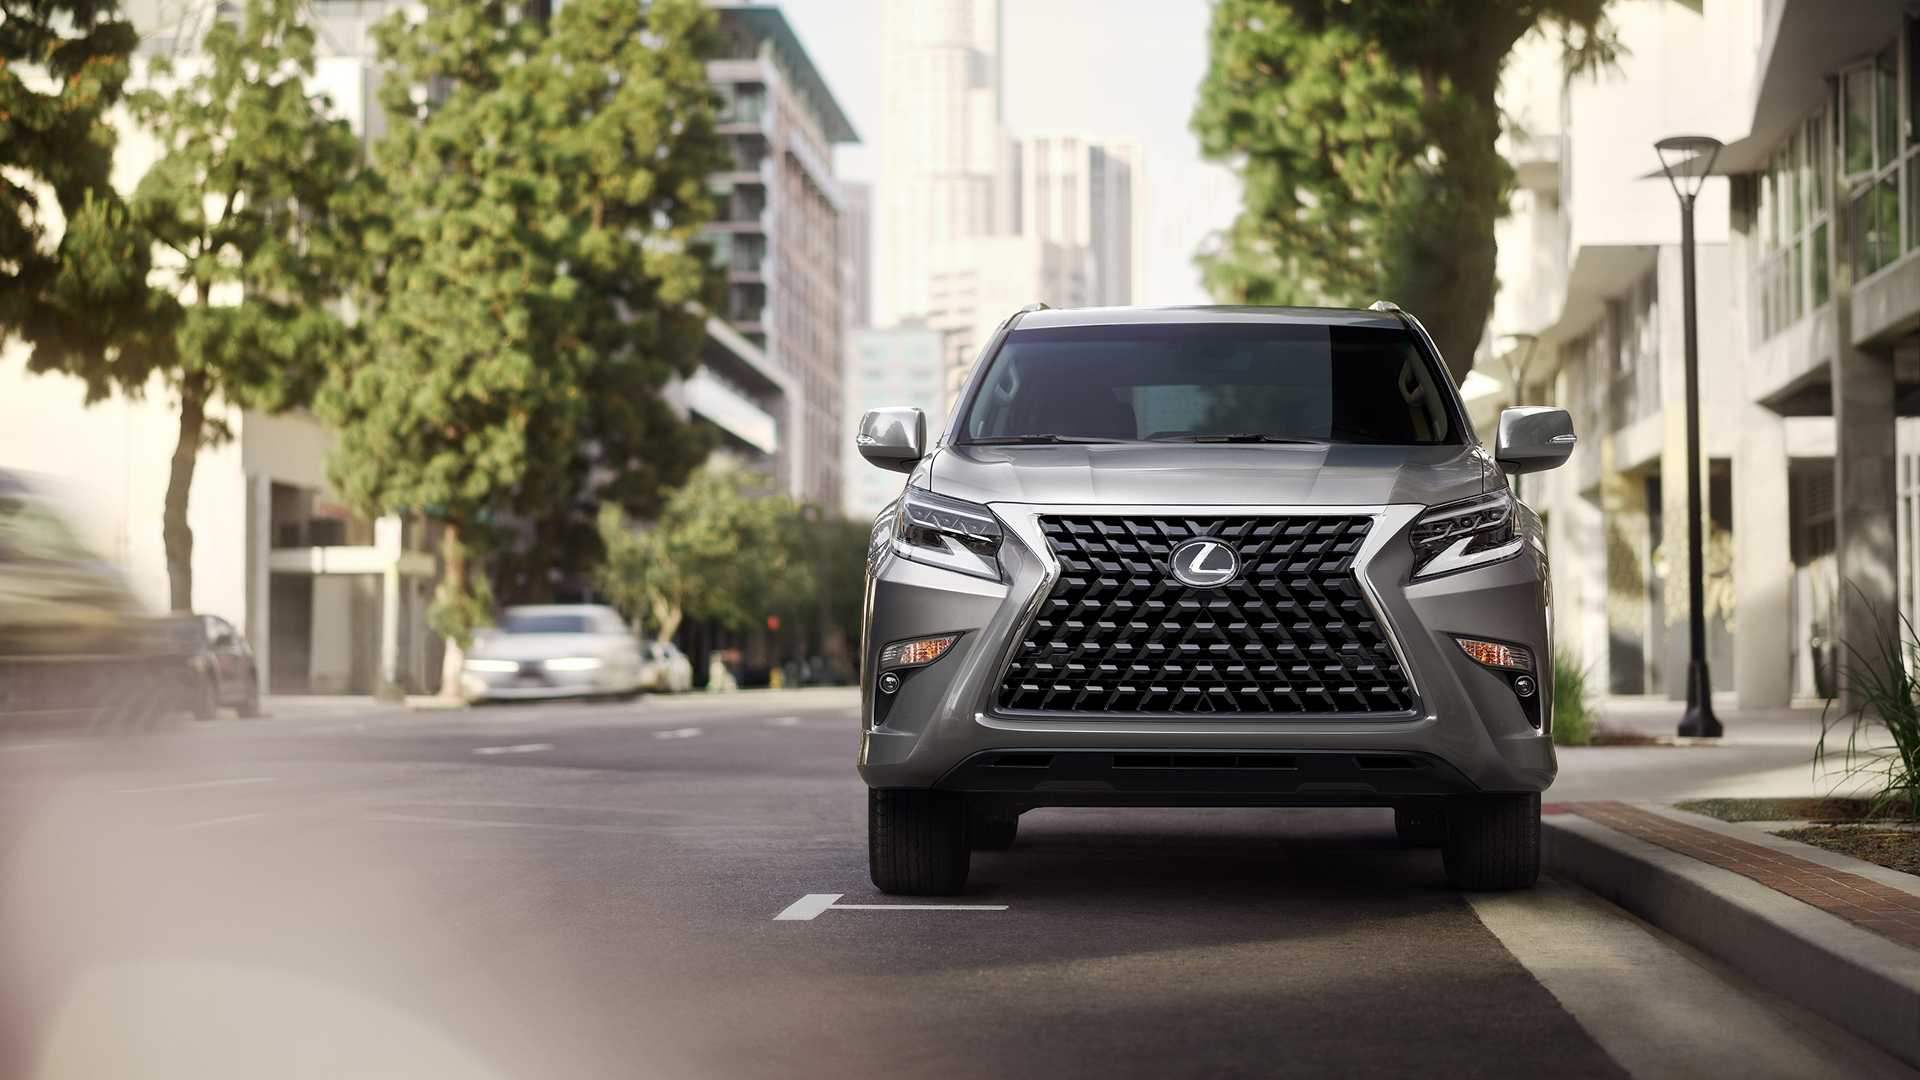 16 All New When Does Lexus Gx 2020 Come Out Pictures